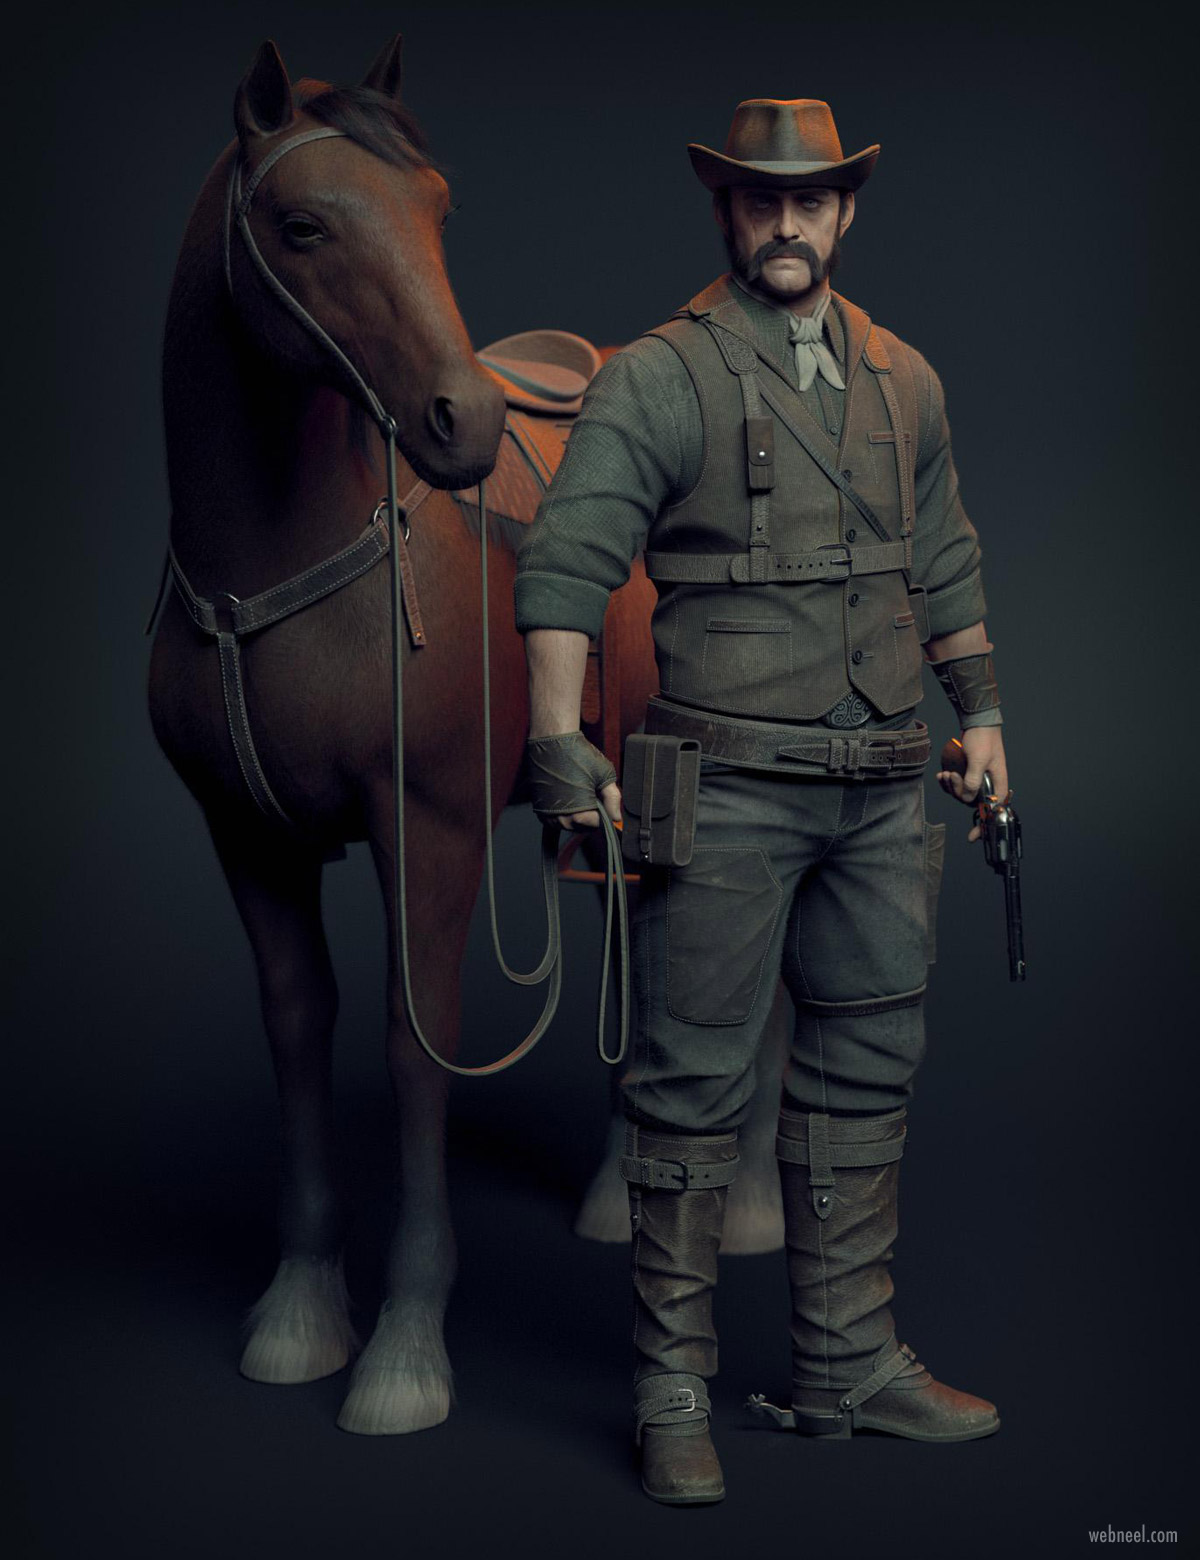 3d model game character design cowboy man with horse by hakob patrikyan